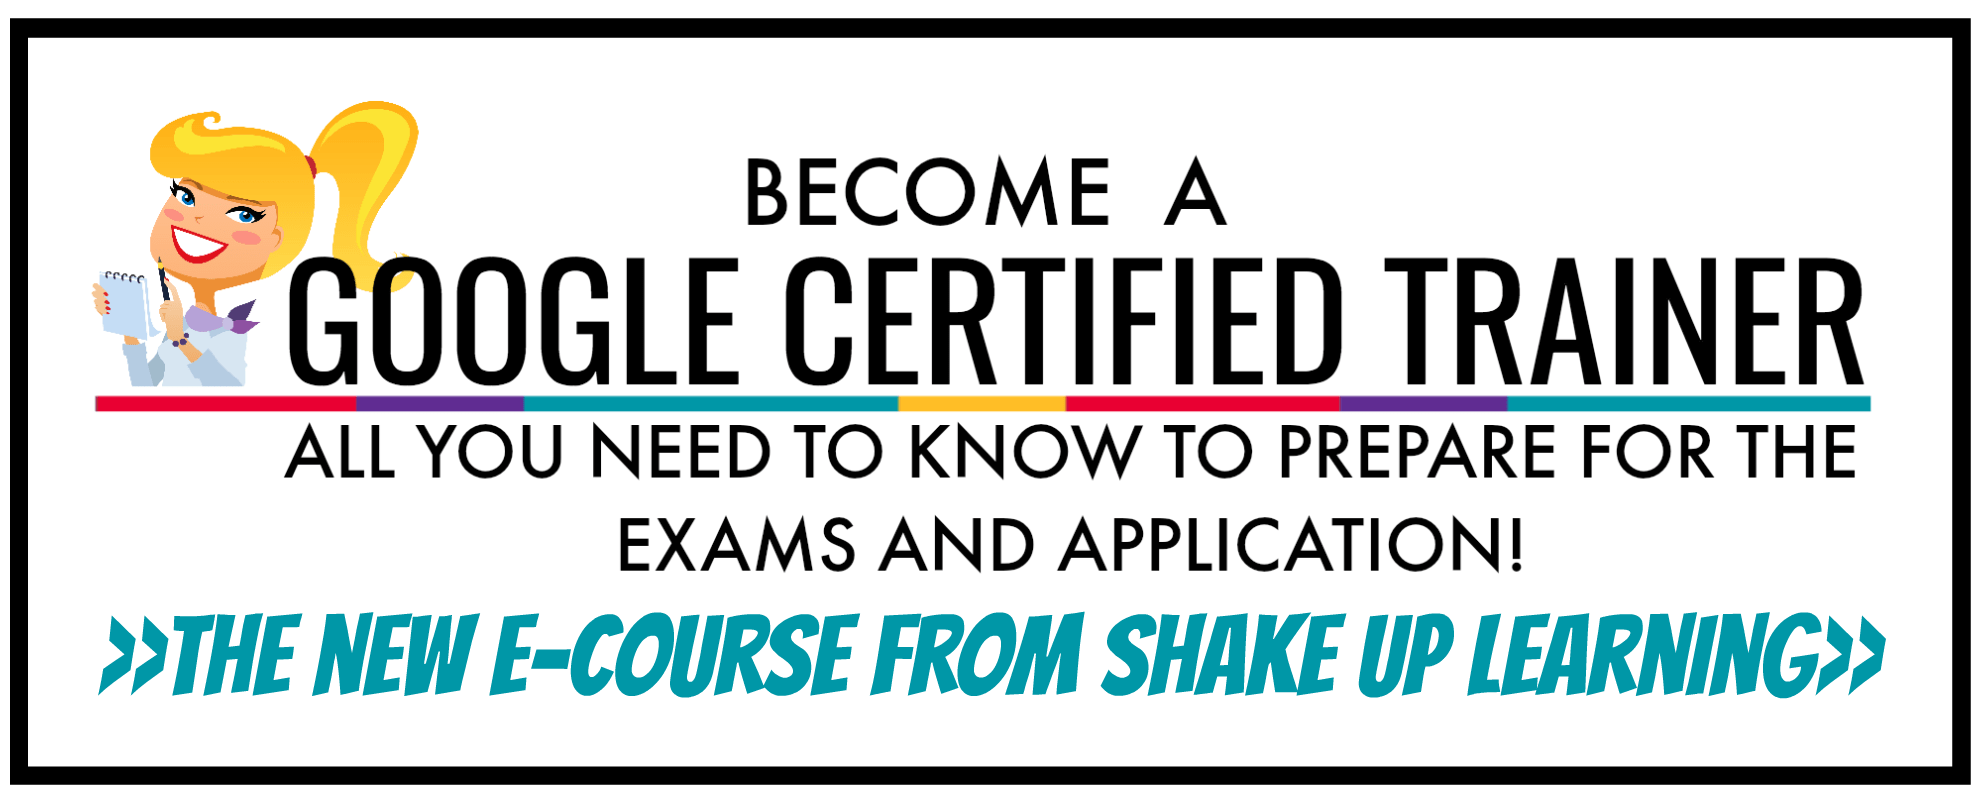 Become a google certified trainer course ditch that textbook do you want to travel and help other teachers learn how to use google apps in their classroom do you want to get your foot in the door as a consultant xflitez Image collections